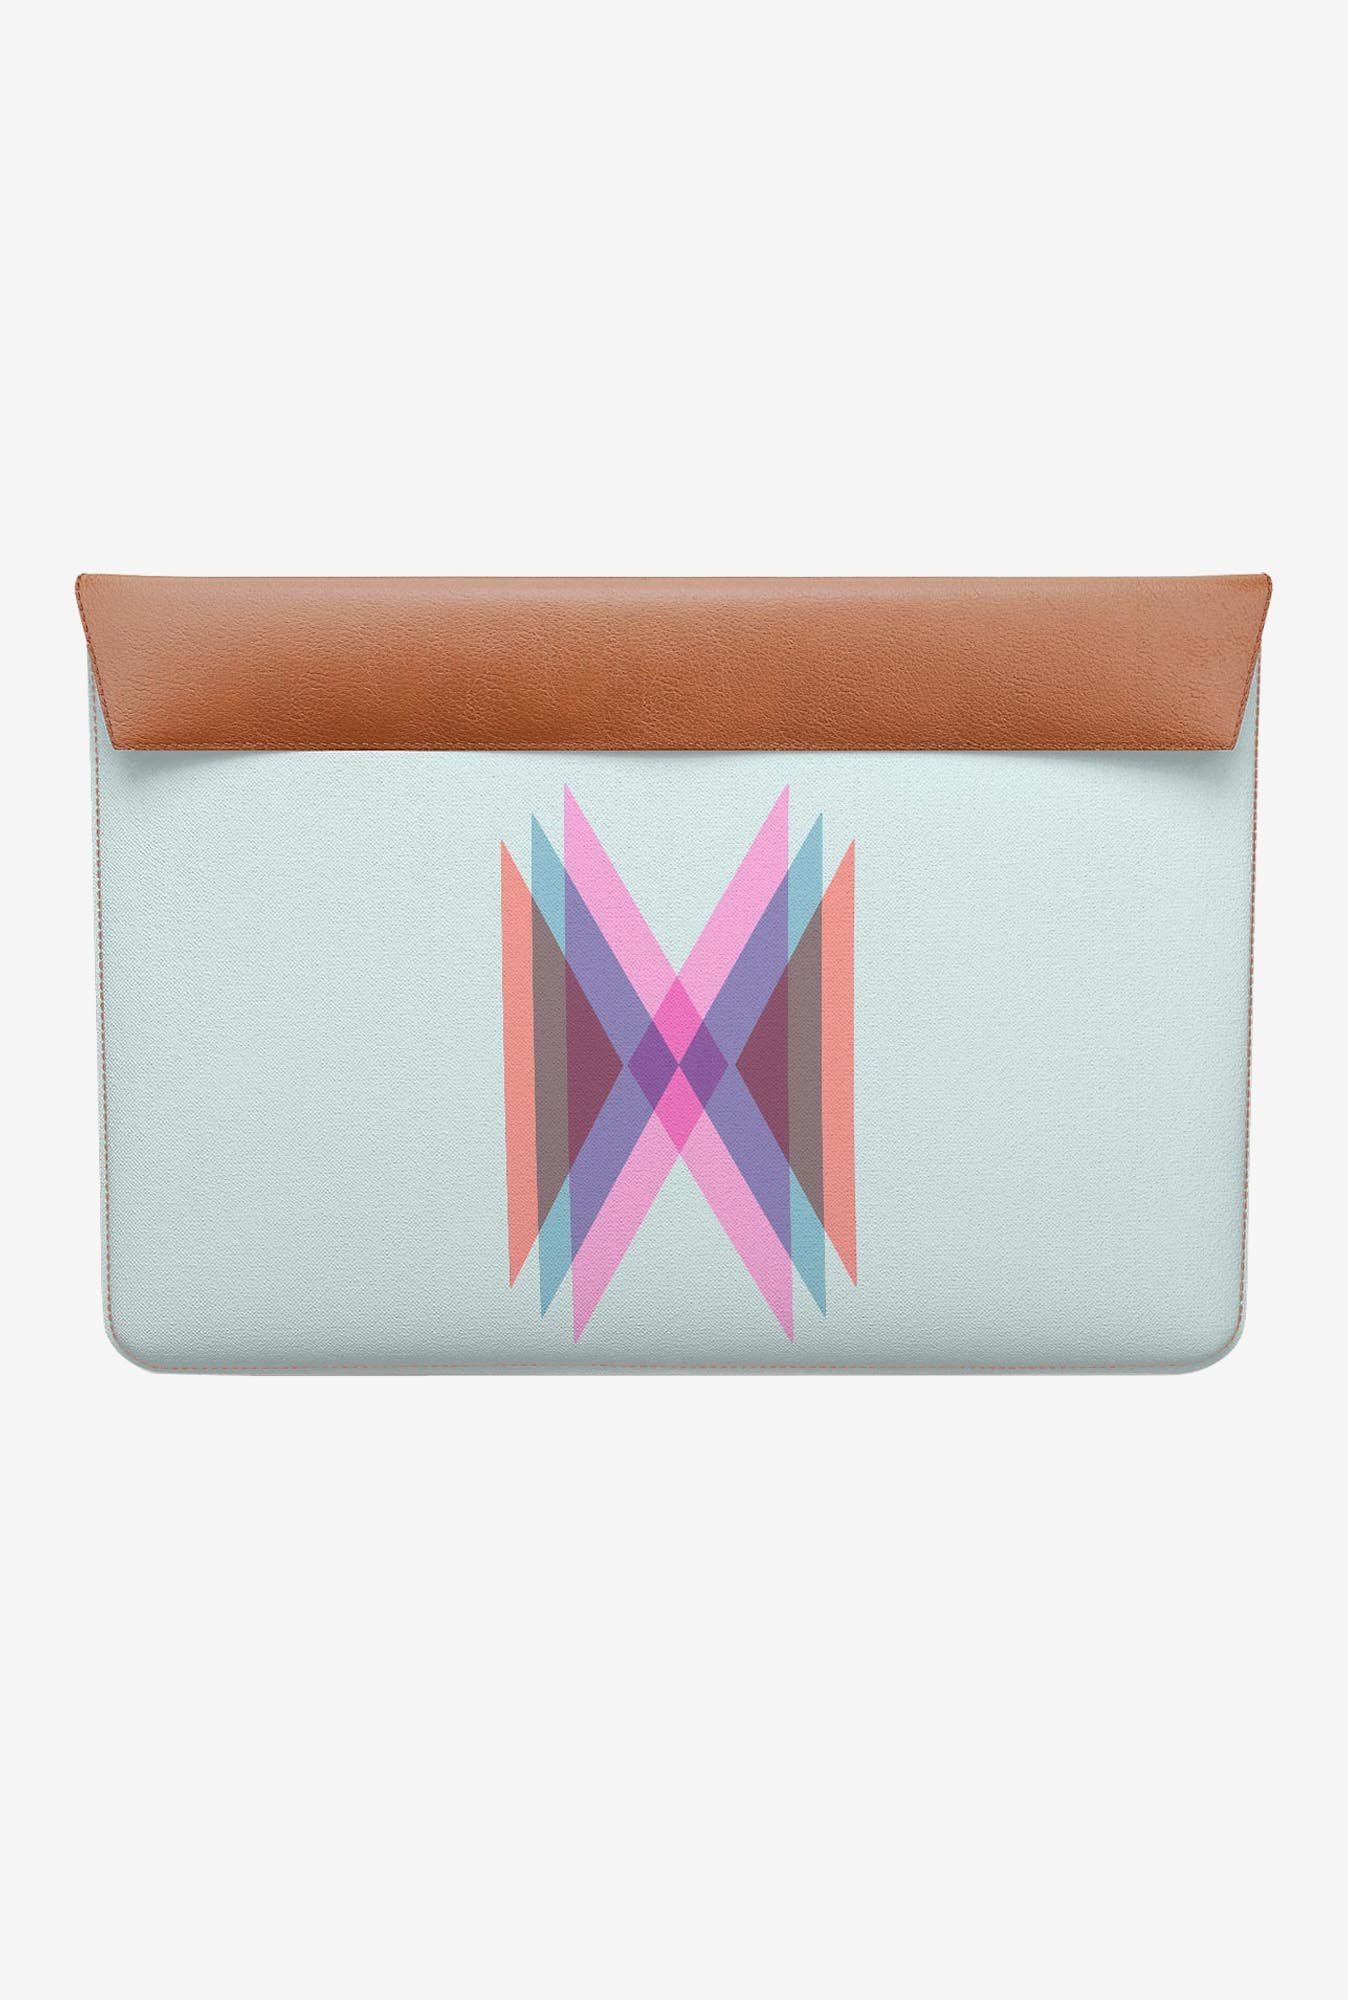 DailyObjects Stylised H MacBook Air 11 Envelope Sleeve